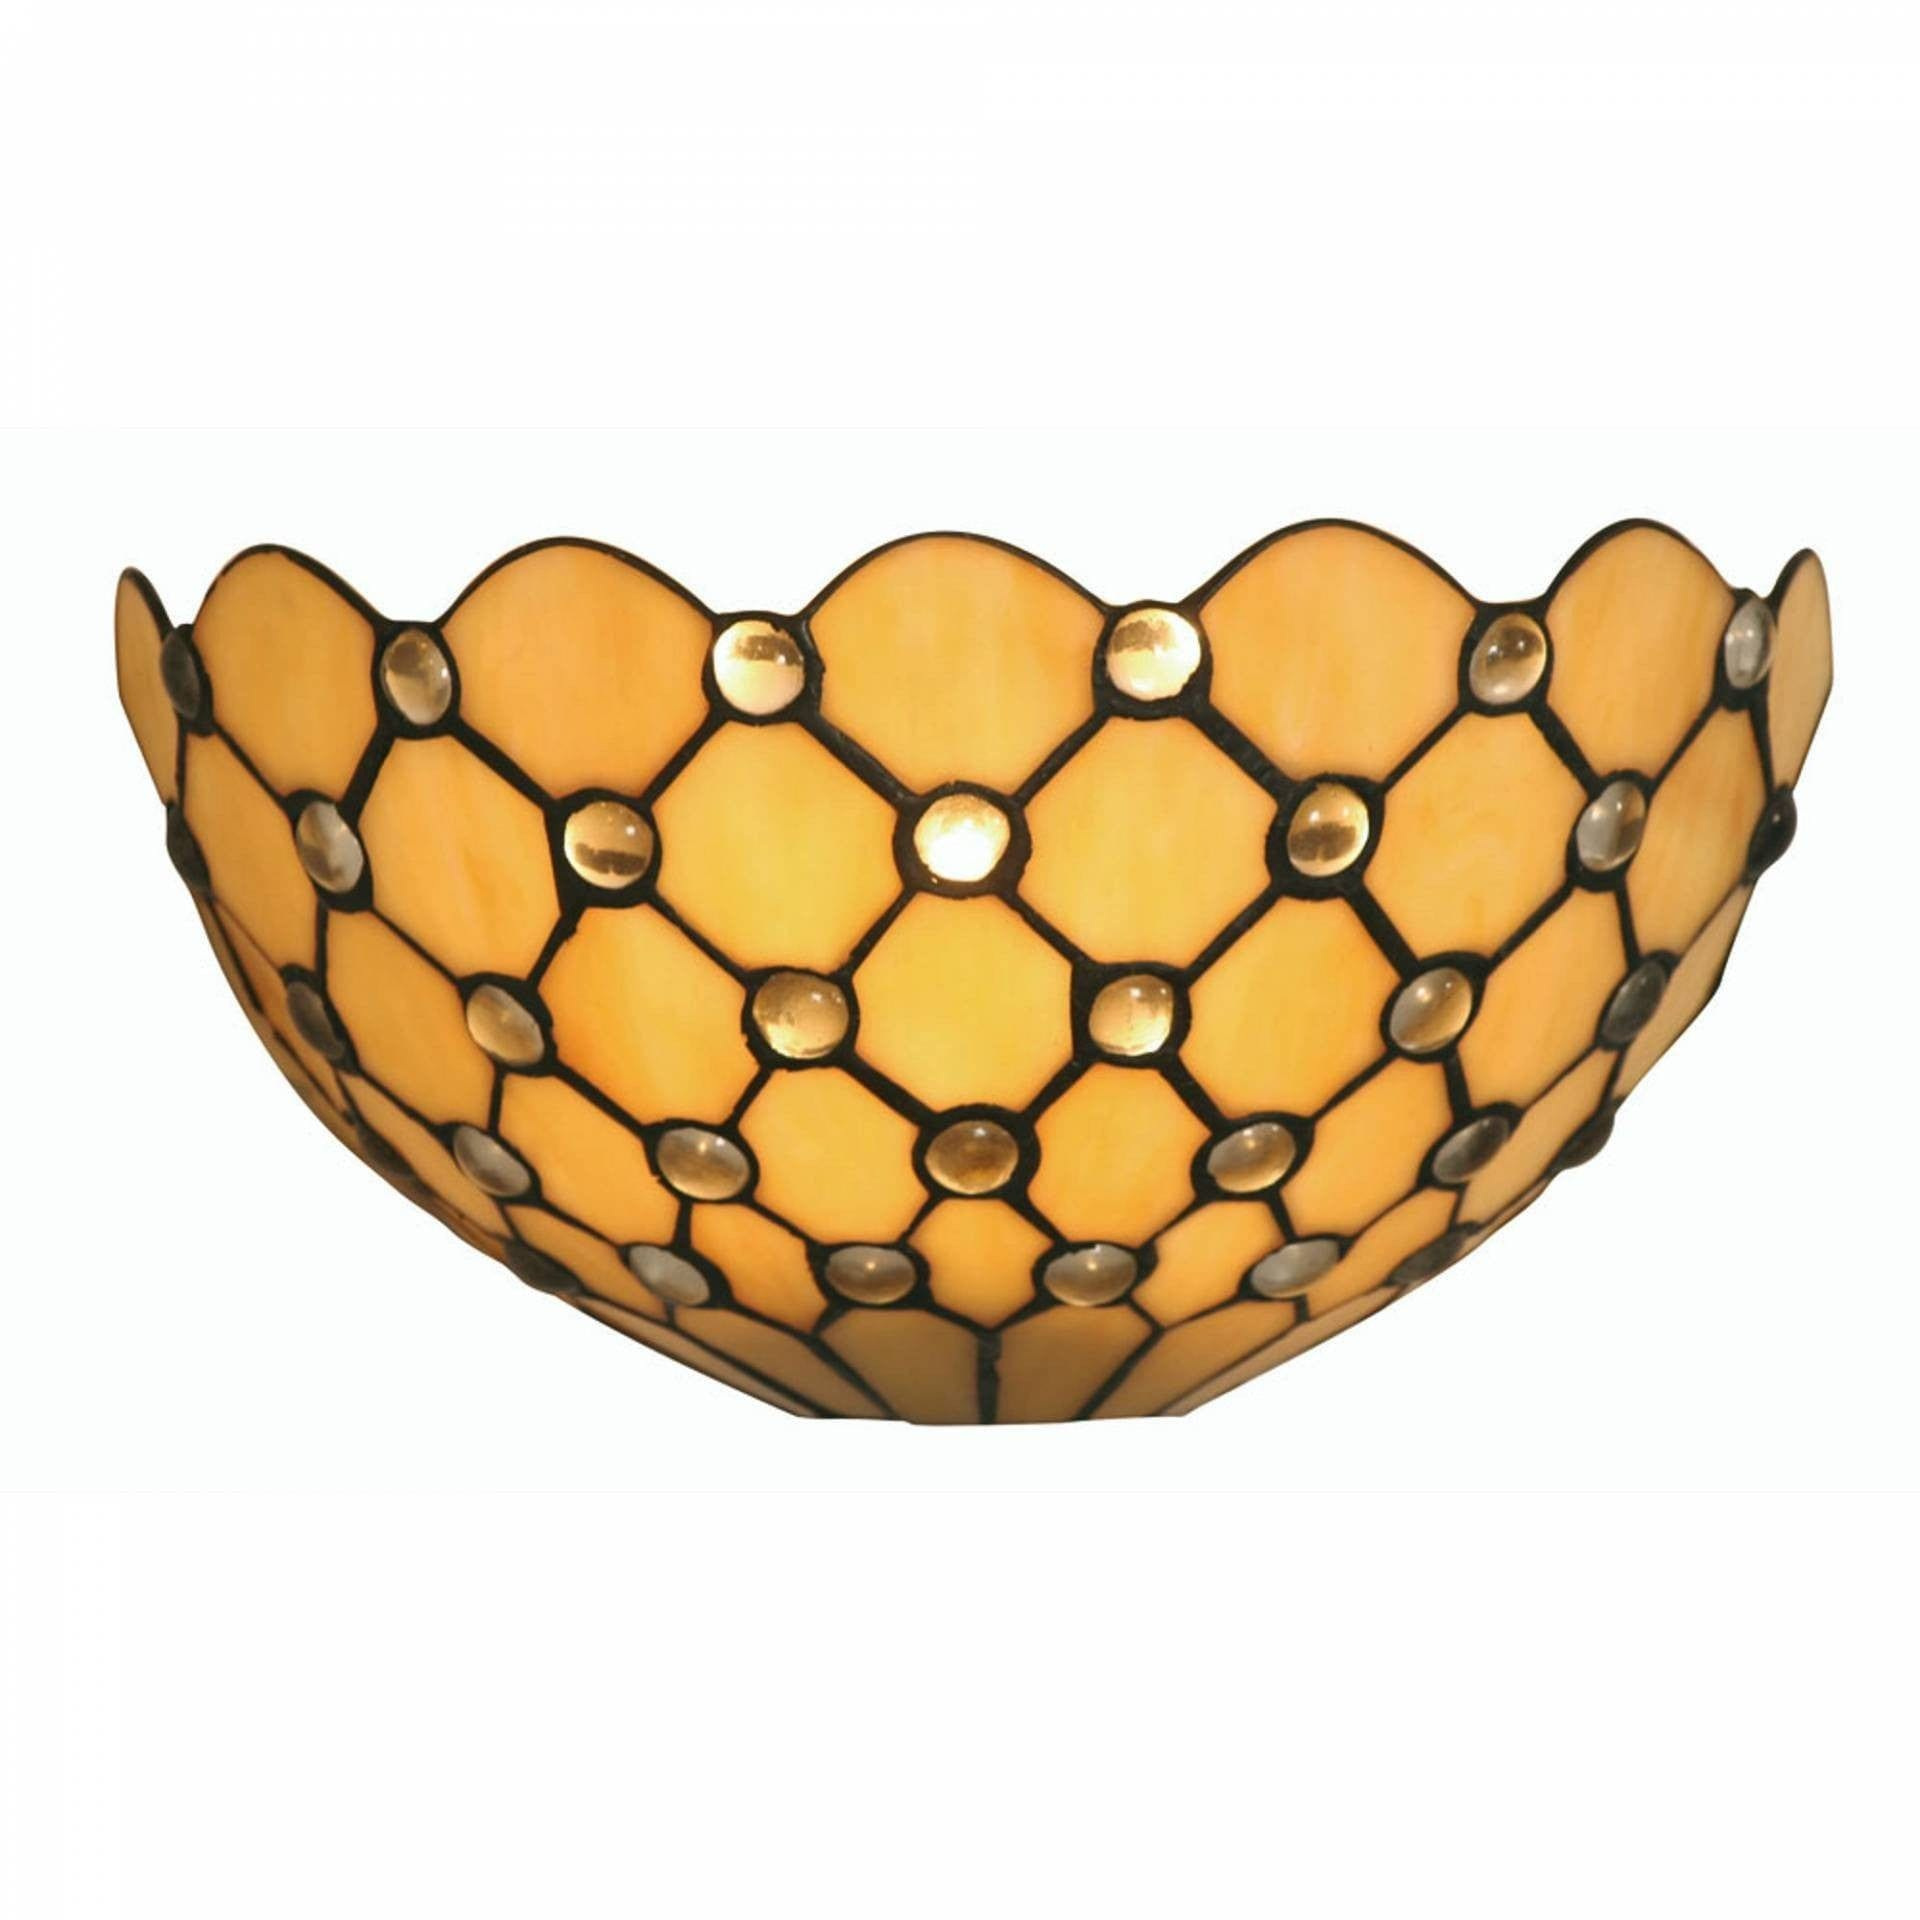 Tiffany Wall Lights - Oaks Tiffany Jewel Wall Light